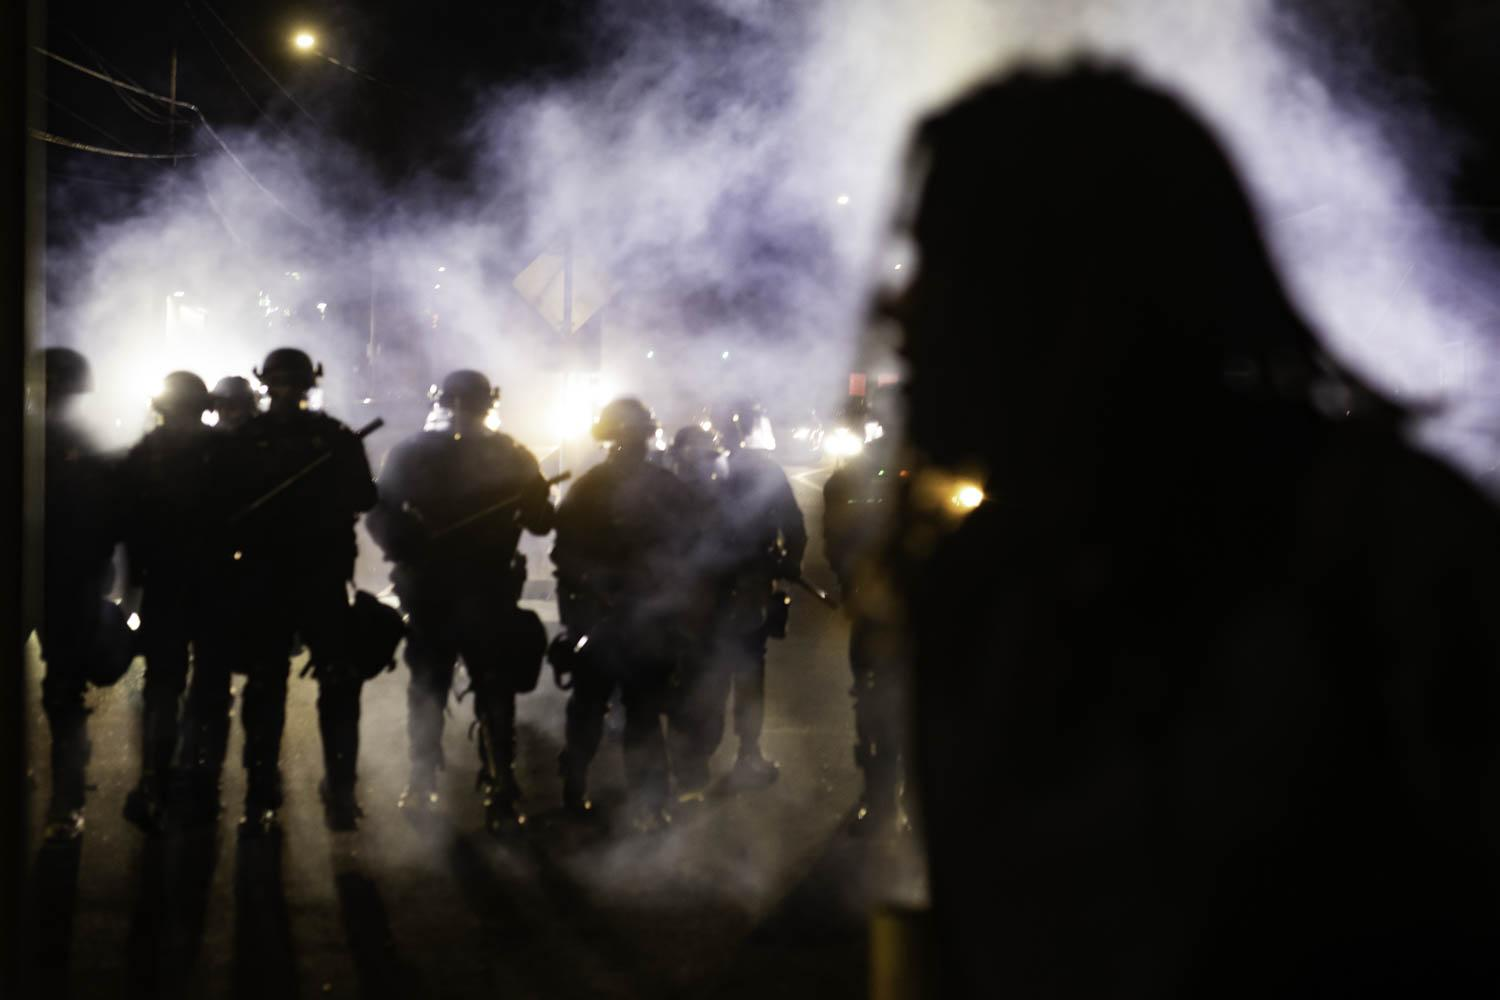 A protester crosses the street as a line of Portland police officers approach amidst a cloud of teargas on the night of August 9, 2020.